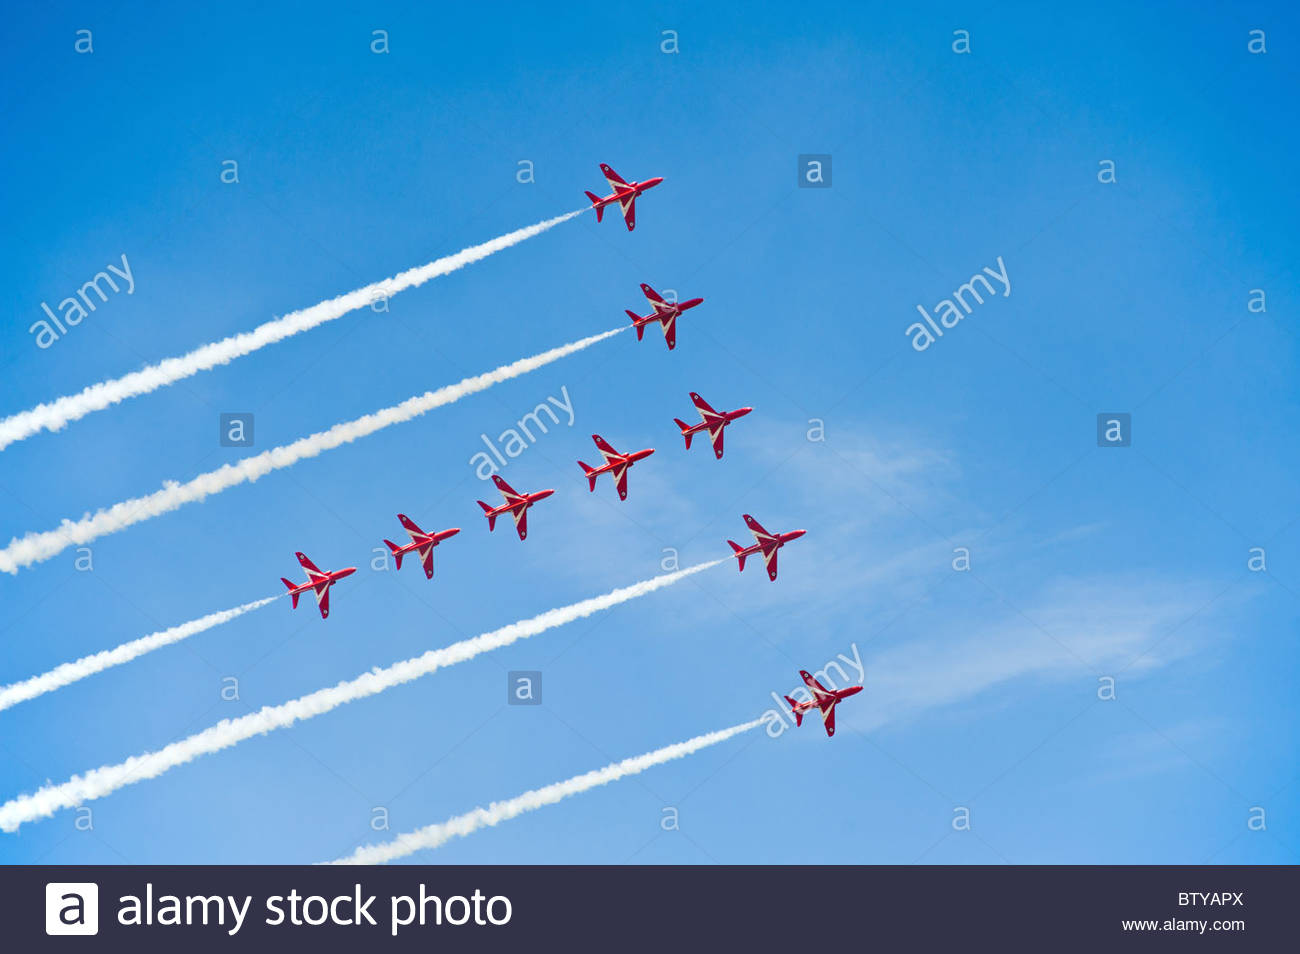 Red Arrows flying in formation, at Farnborough airshow 2010 - Stock Image